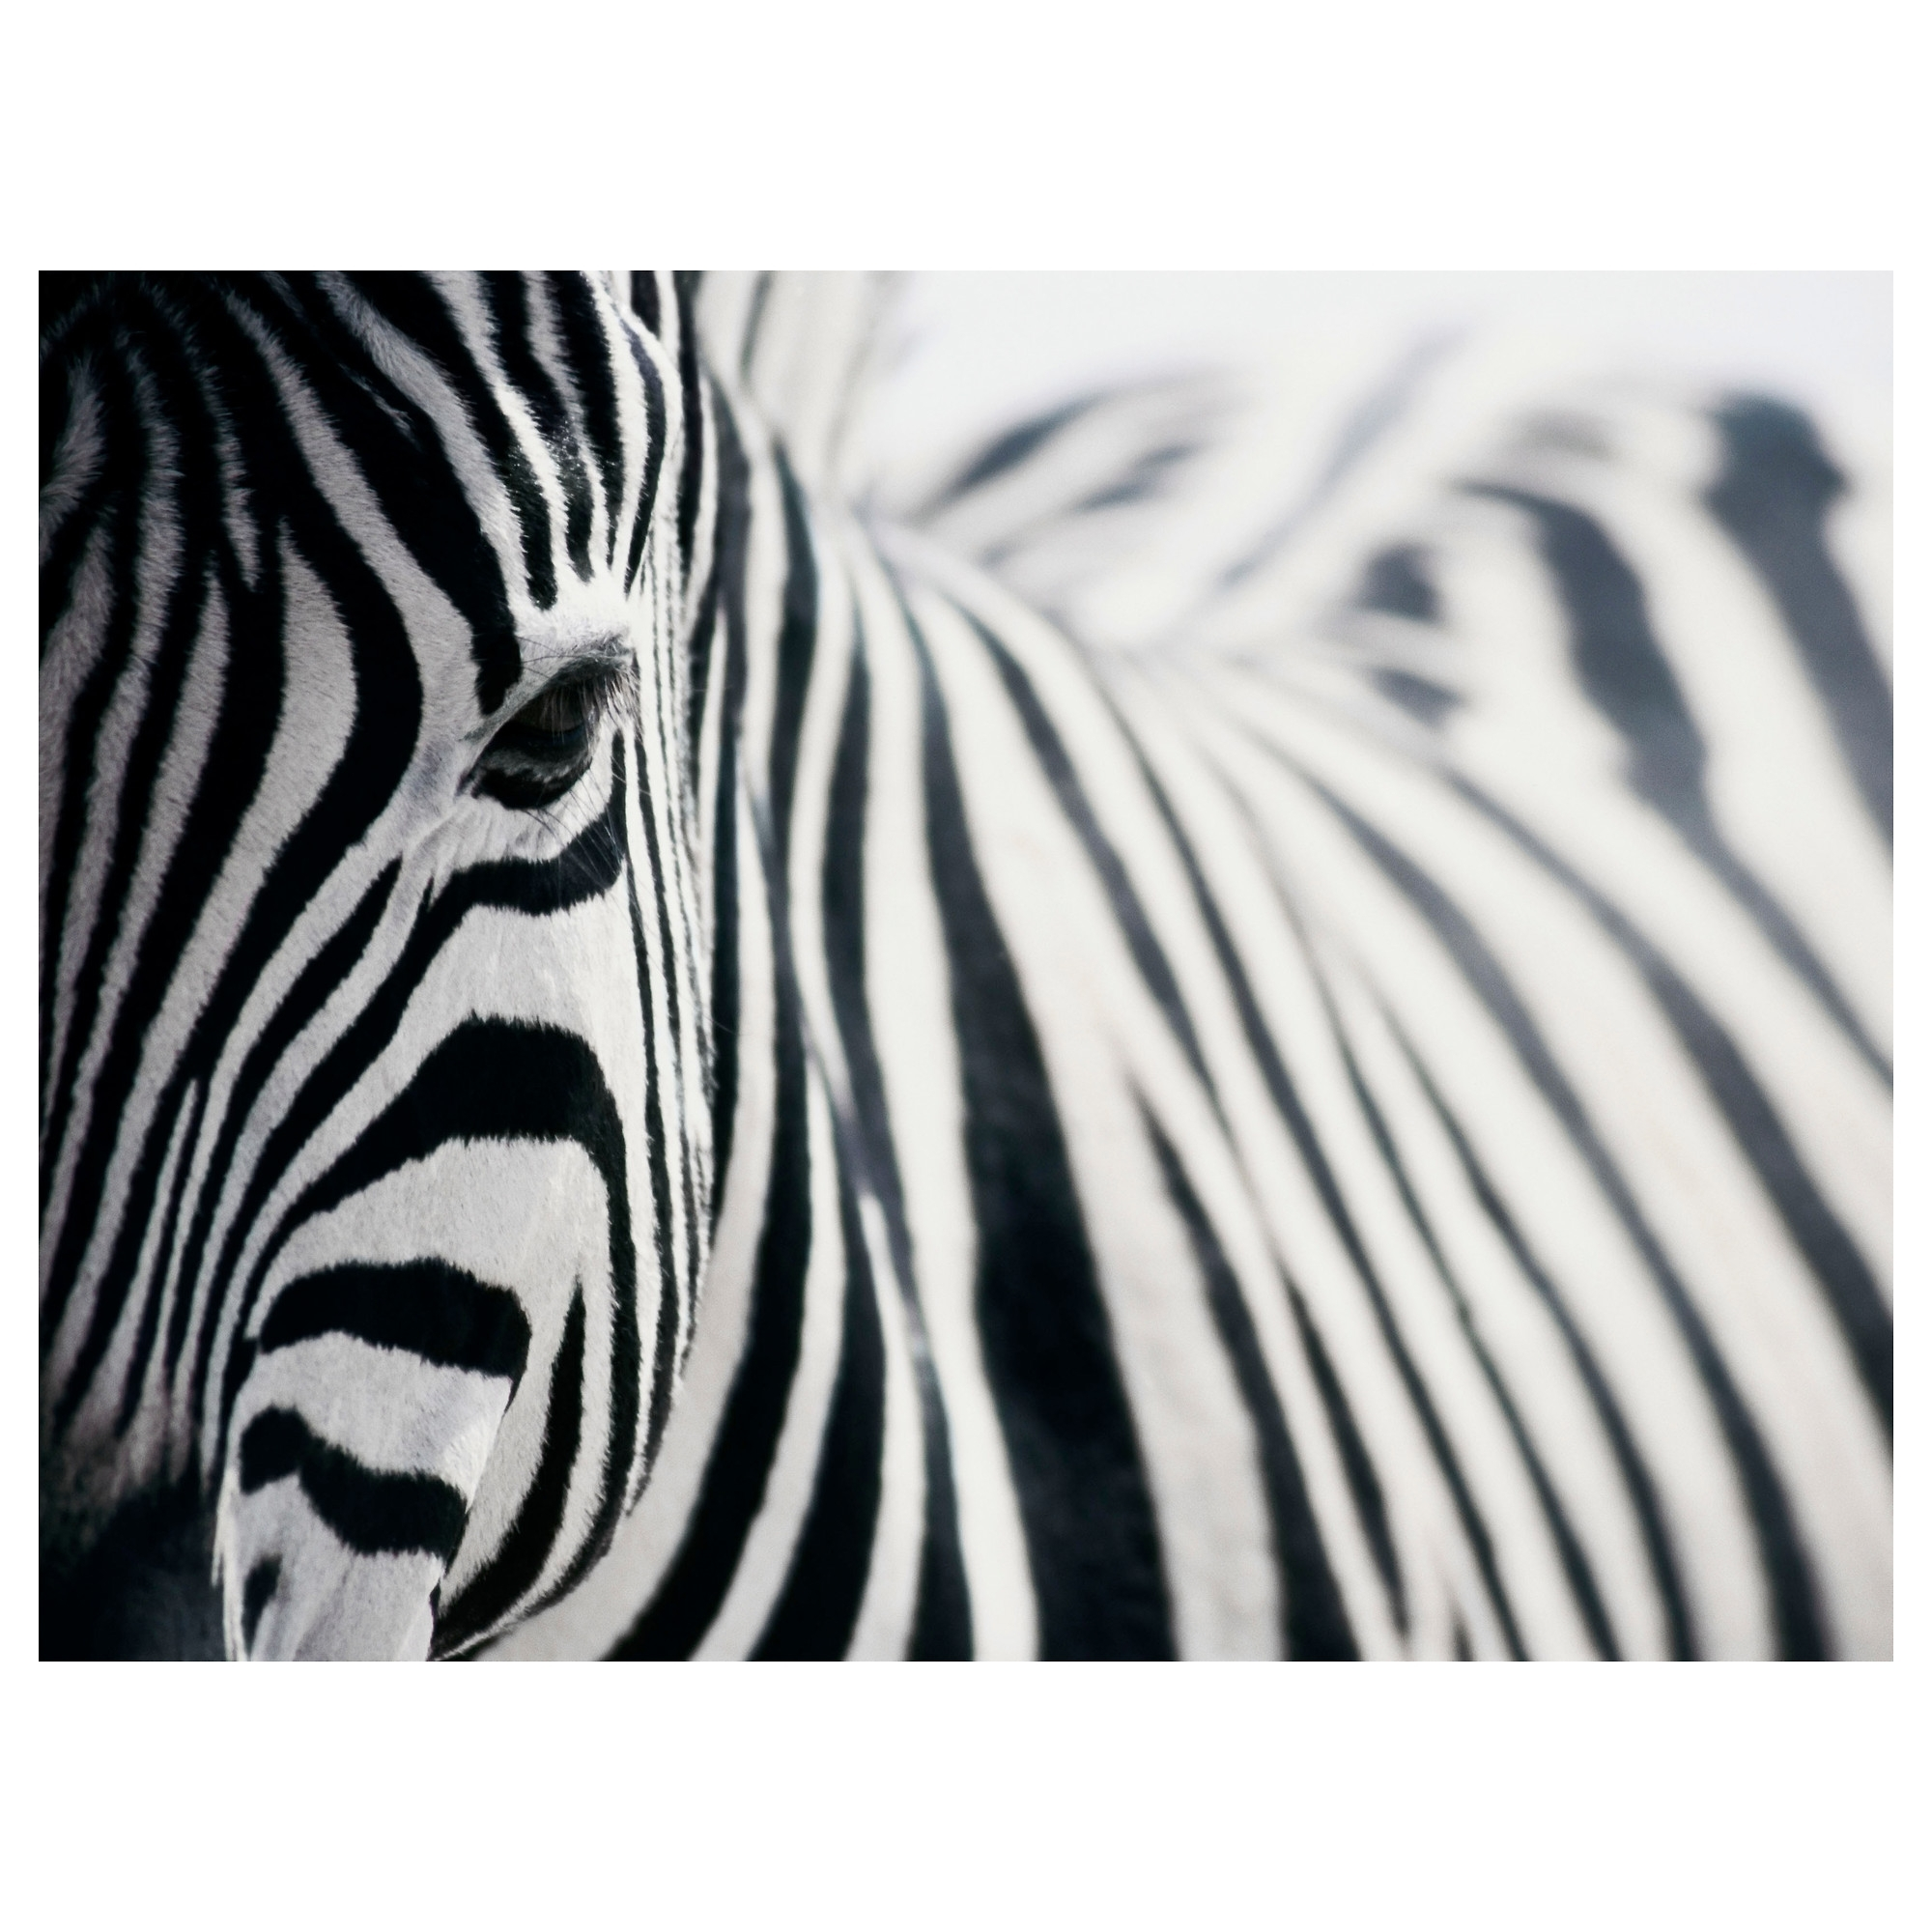 Well Known Zebra Canvas Wall Art Intended For Zebra Canvas Wall Art – Culturehoop (View 7 of 15)